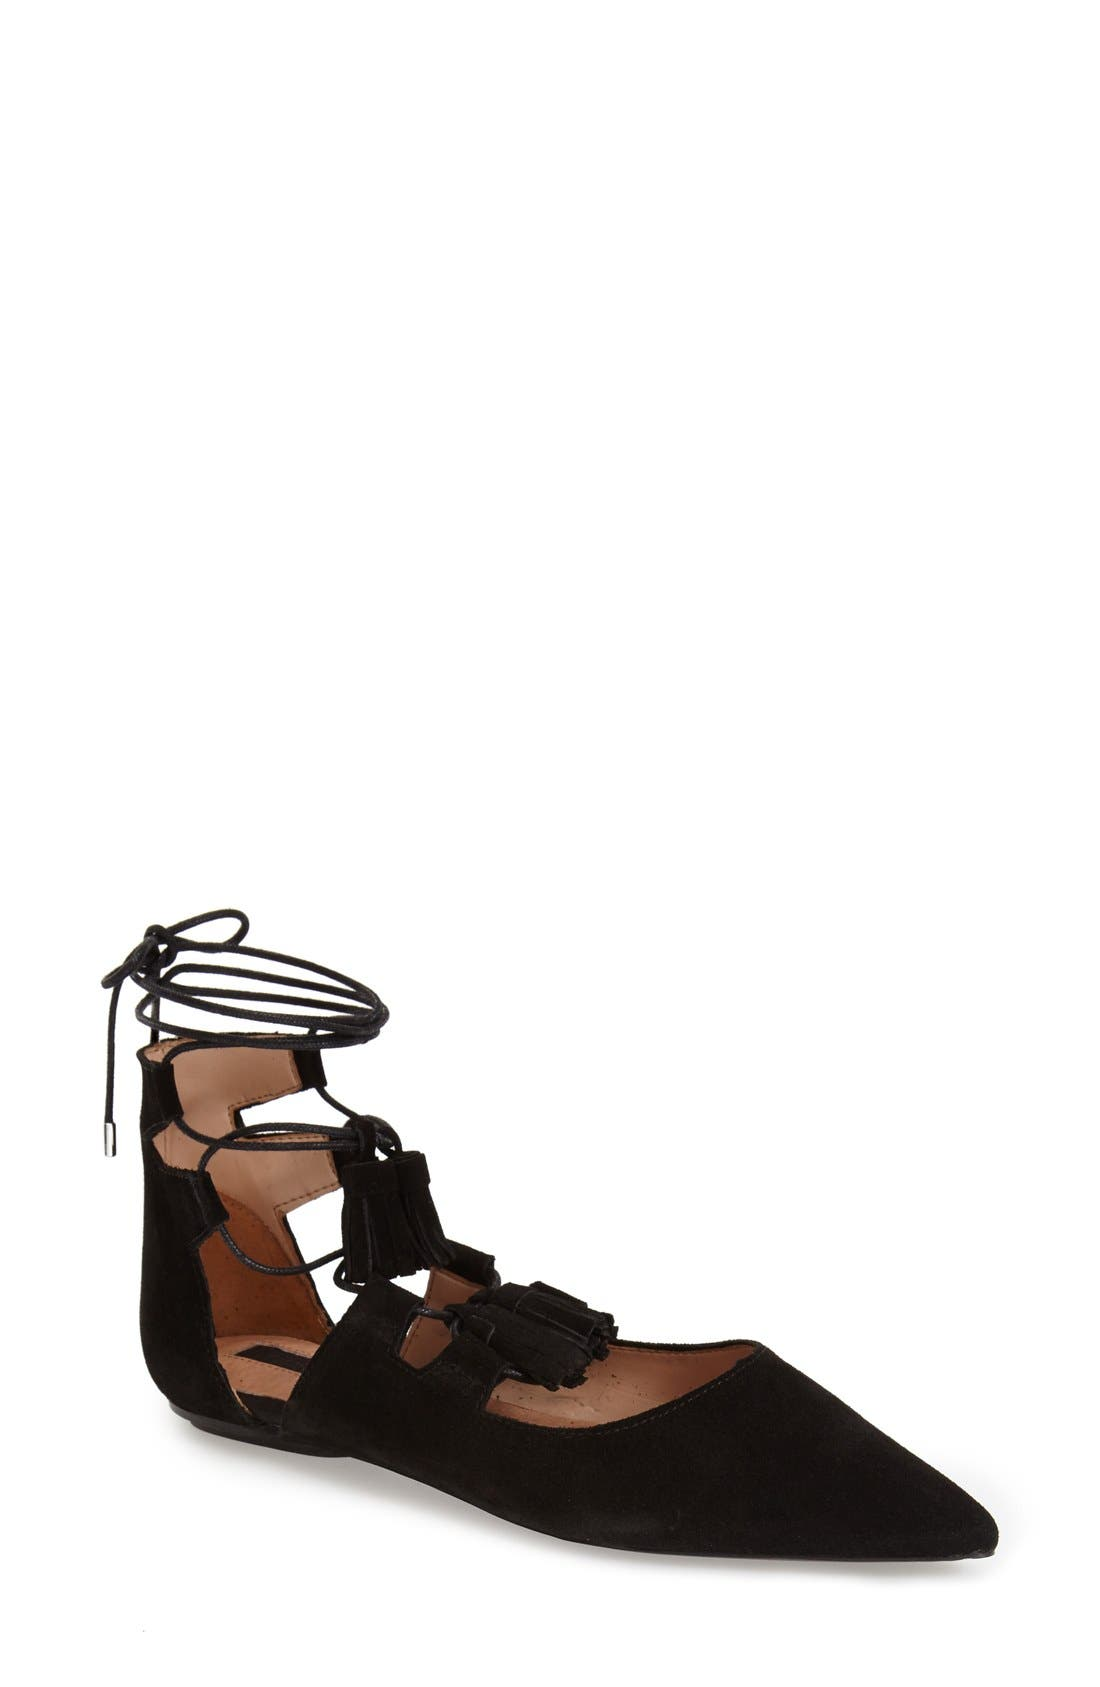 Main Image - Topshop'Leather Kiss' Pointy Toe GhillieFlat (Women)